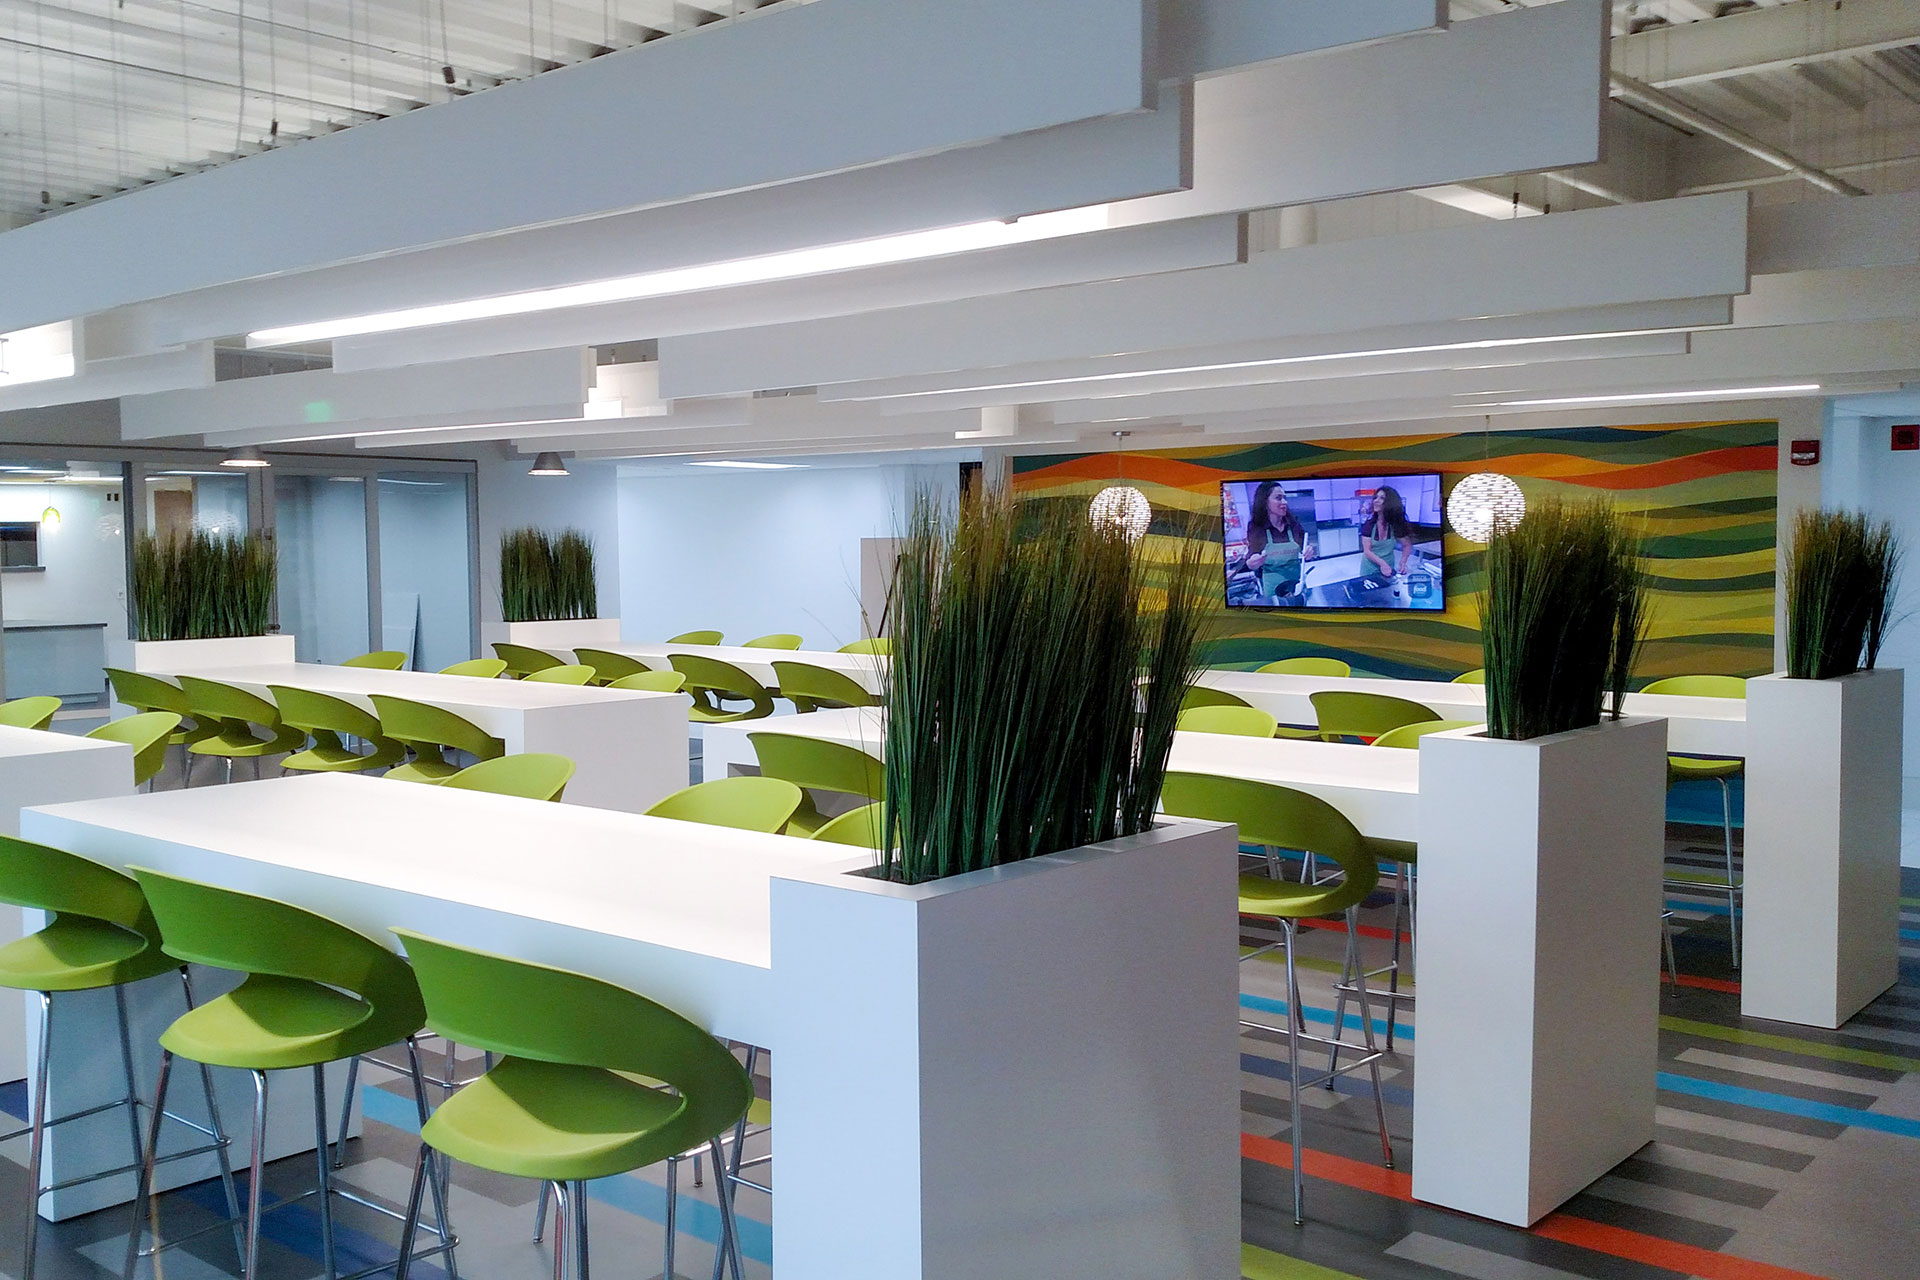 Solicore plastic laminate tables with integrated planters, and custom plastic laminate floating ceiling beams.